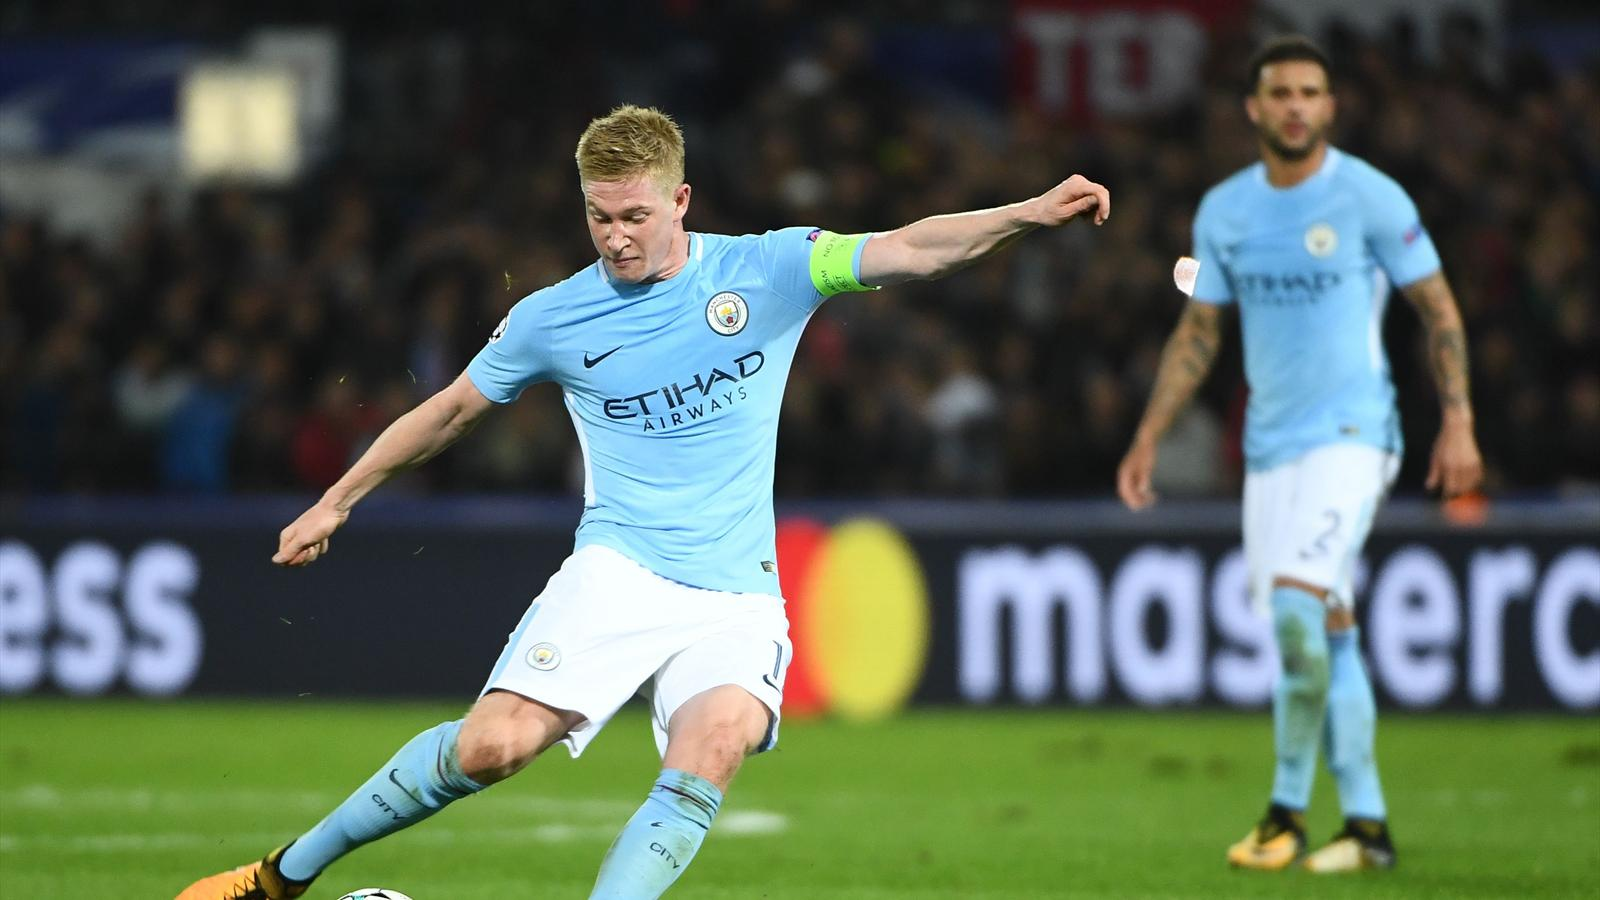 Pep Guardiola hails Kevin De Bruyne as 'one of the best' he's seen